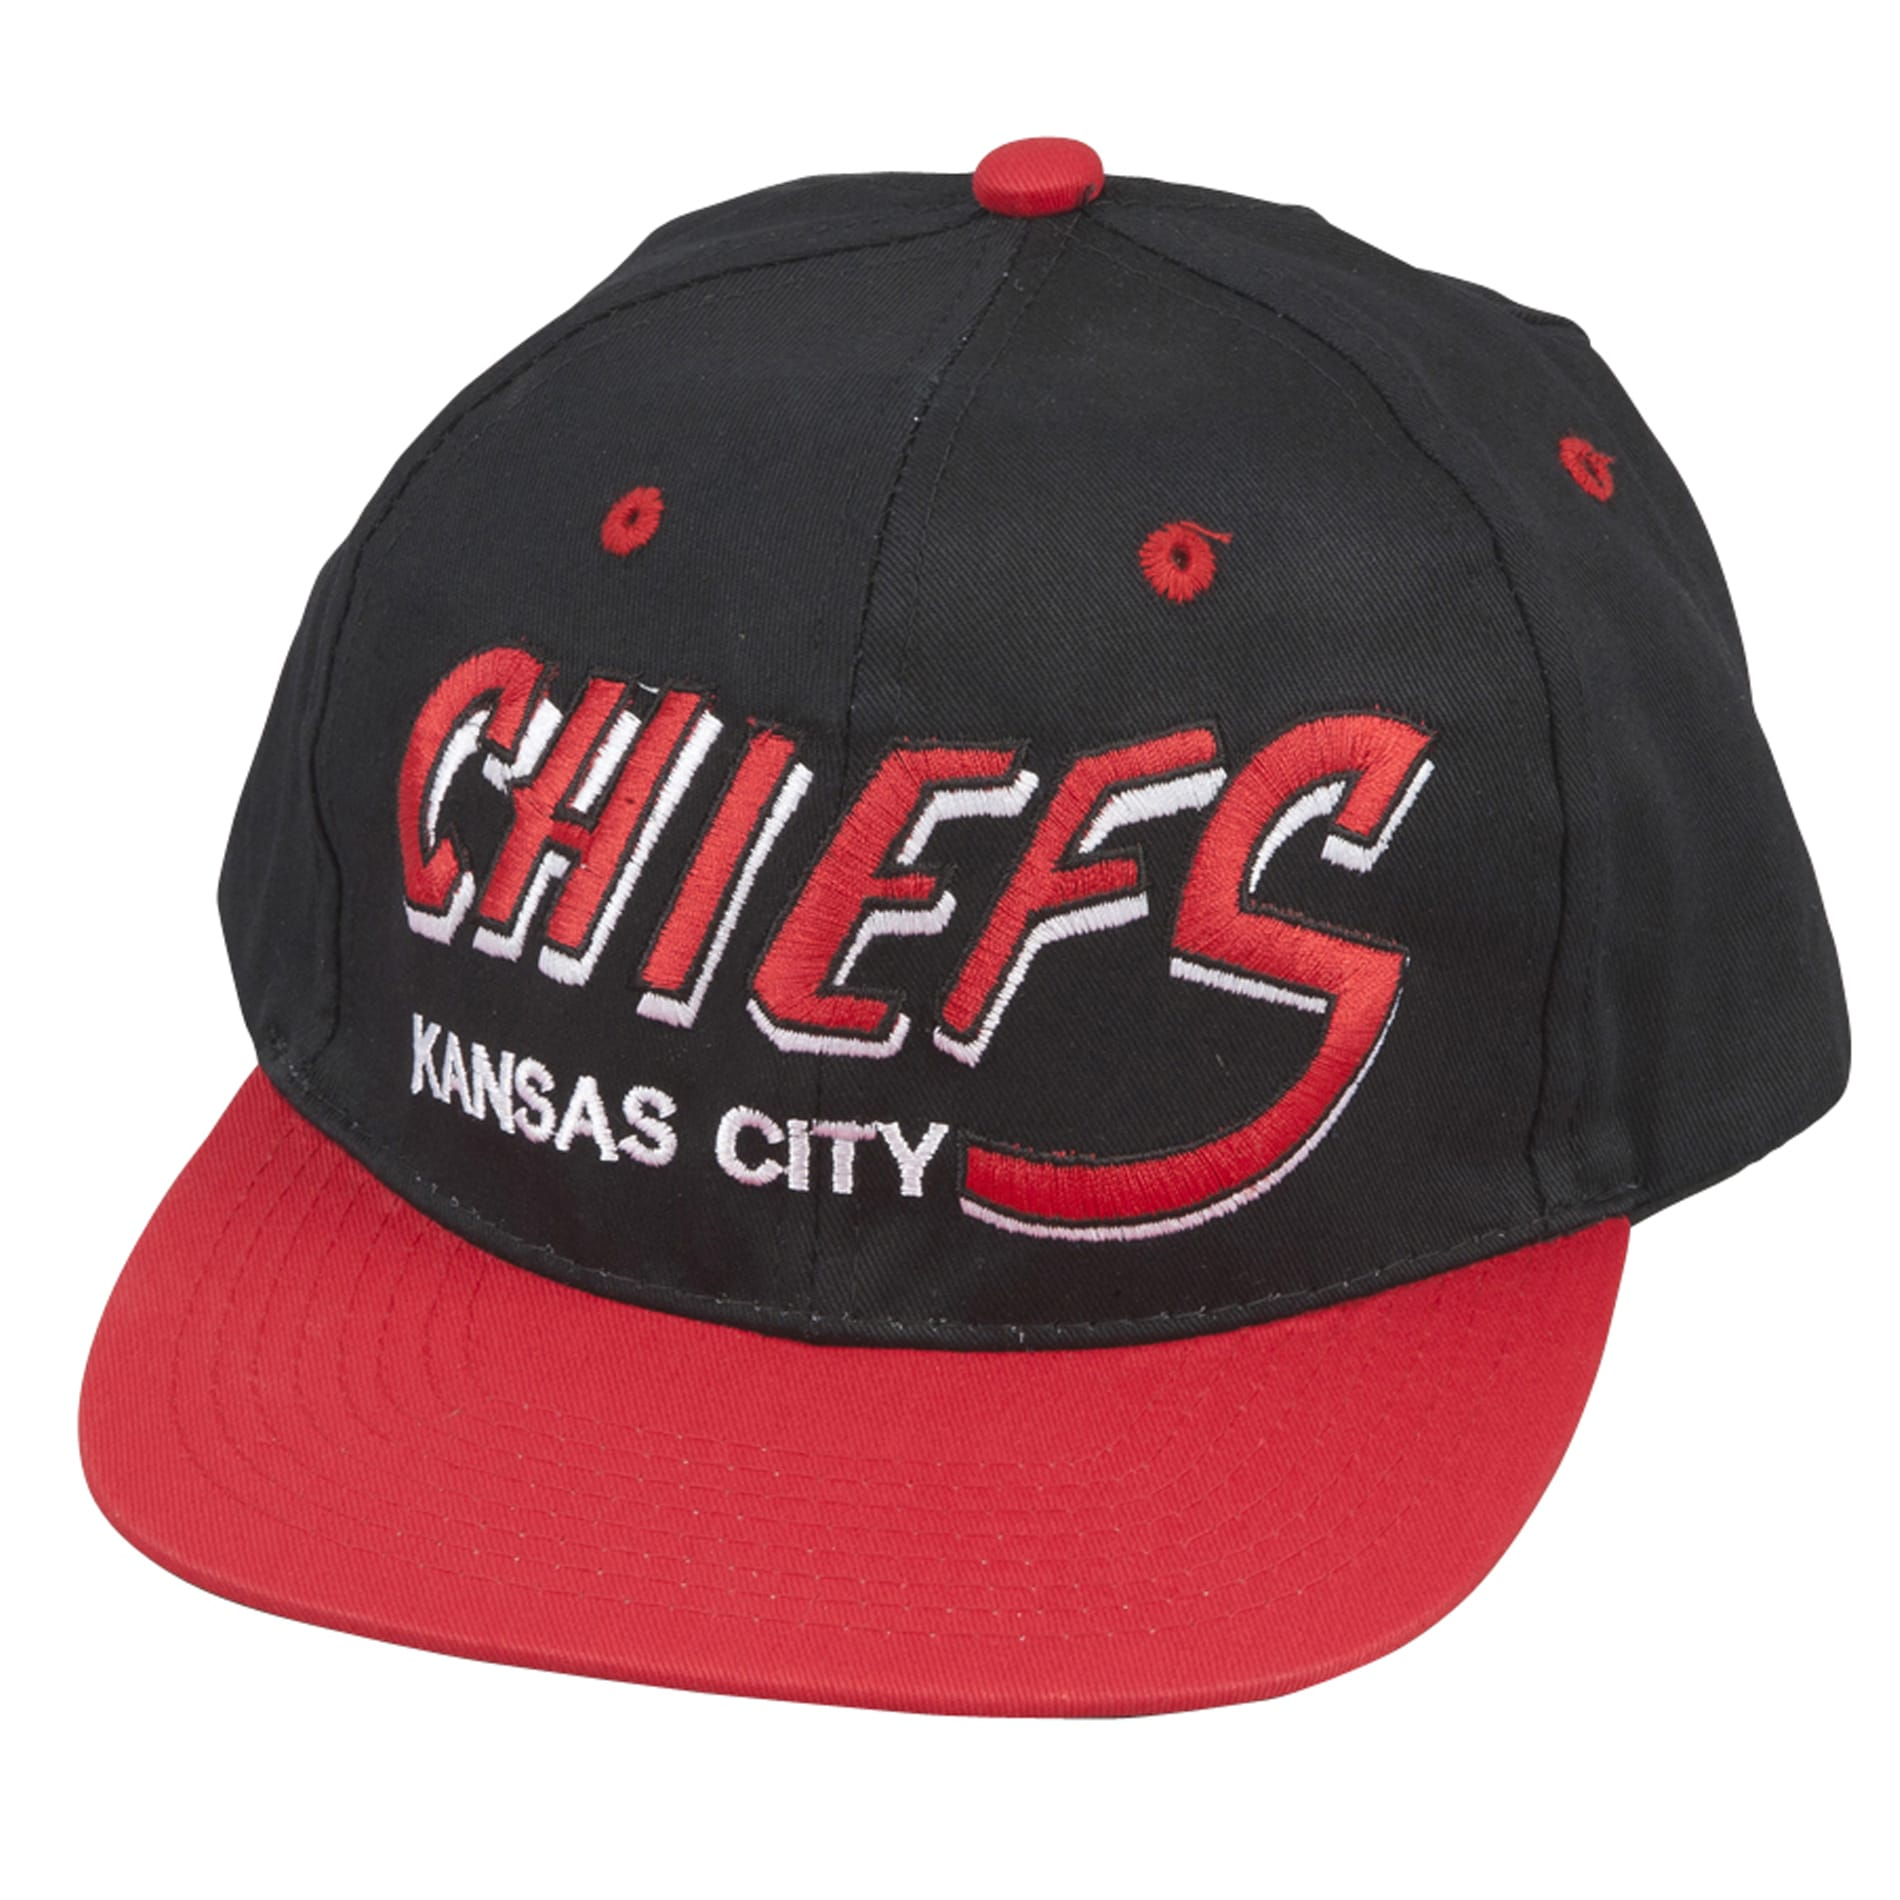 NFL Kansas City Chiefs Retro NFL Snapback Hat